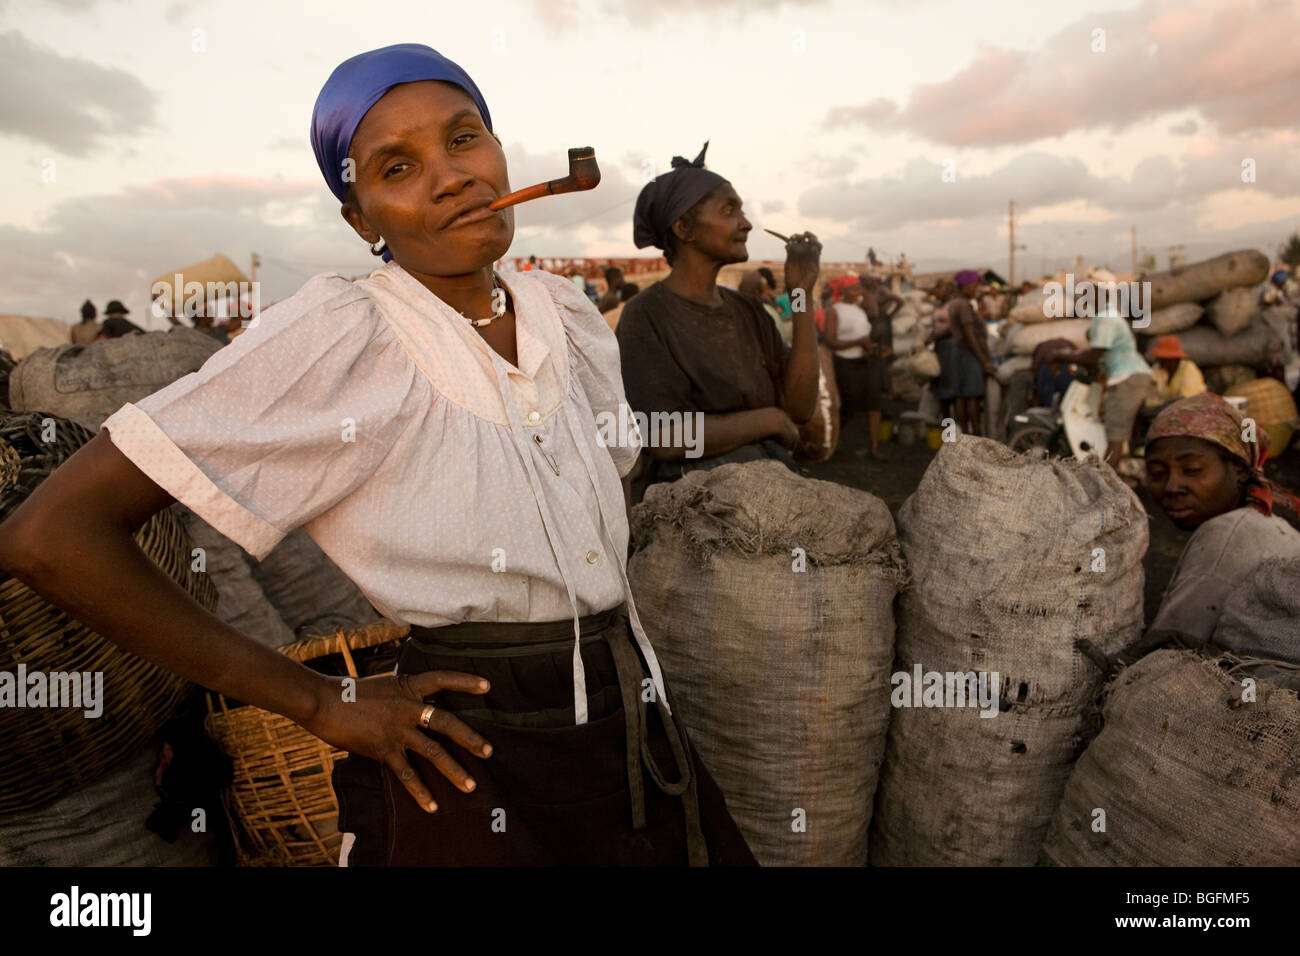 A woman smoking a pipe at the port in Gonaives, Artibonite Department, Haiti. - Stock Image